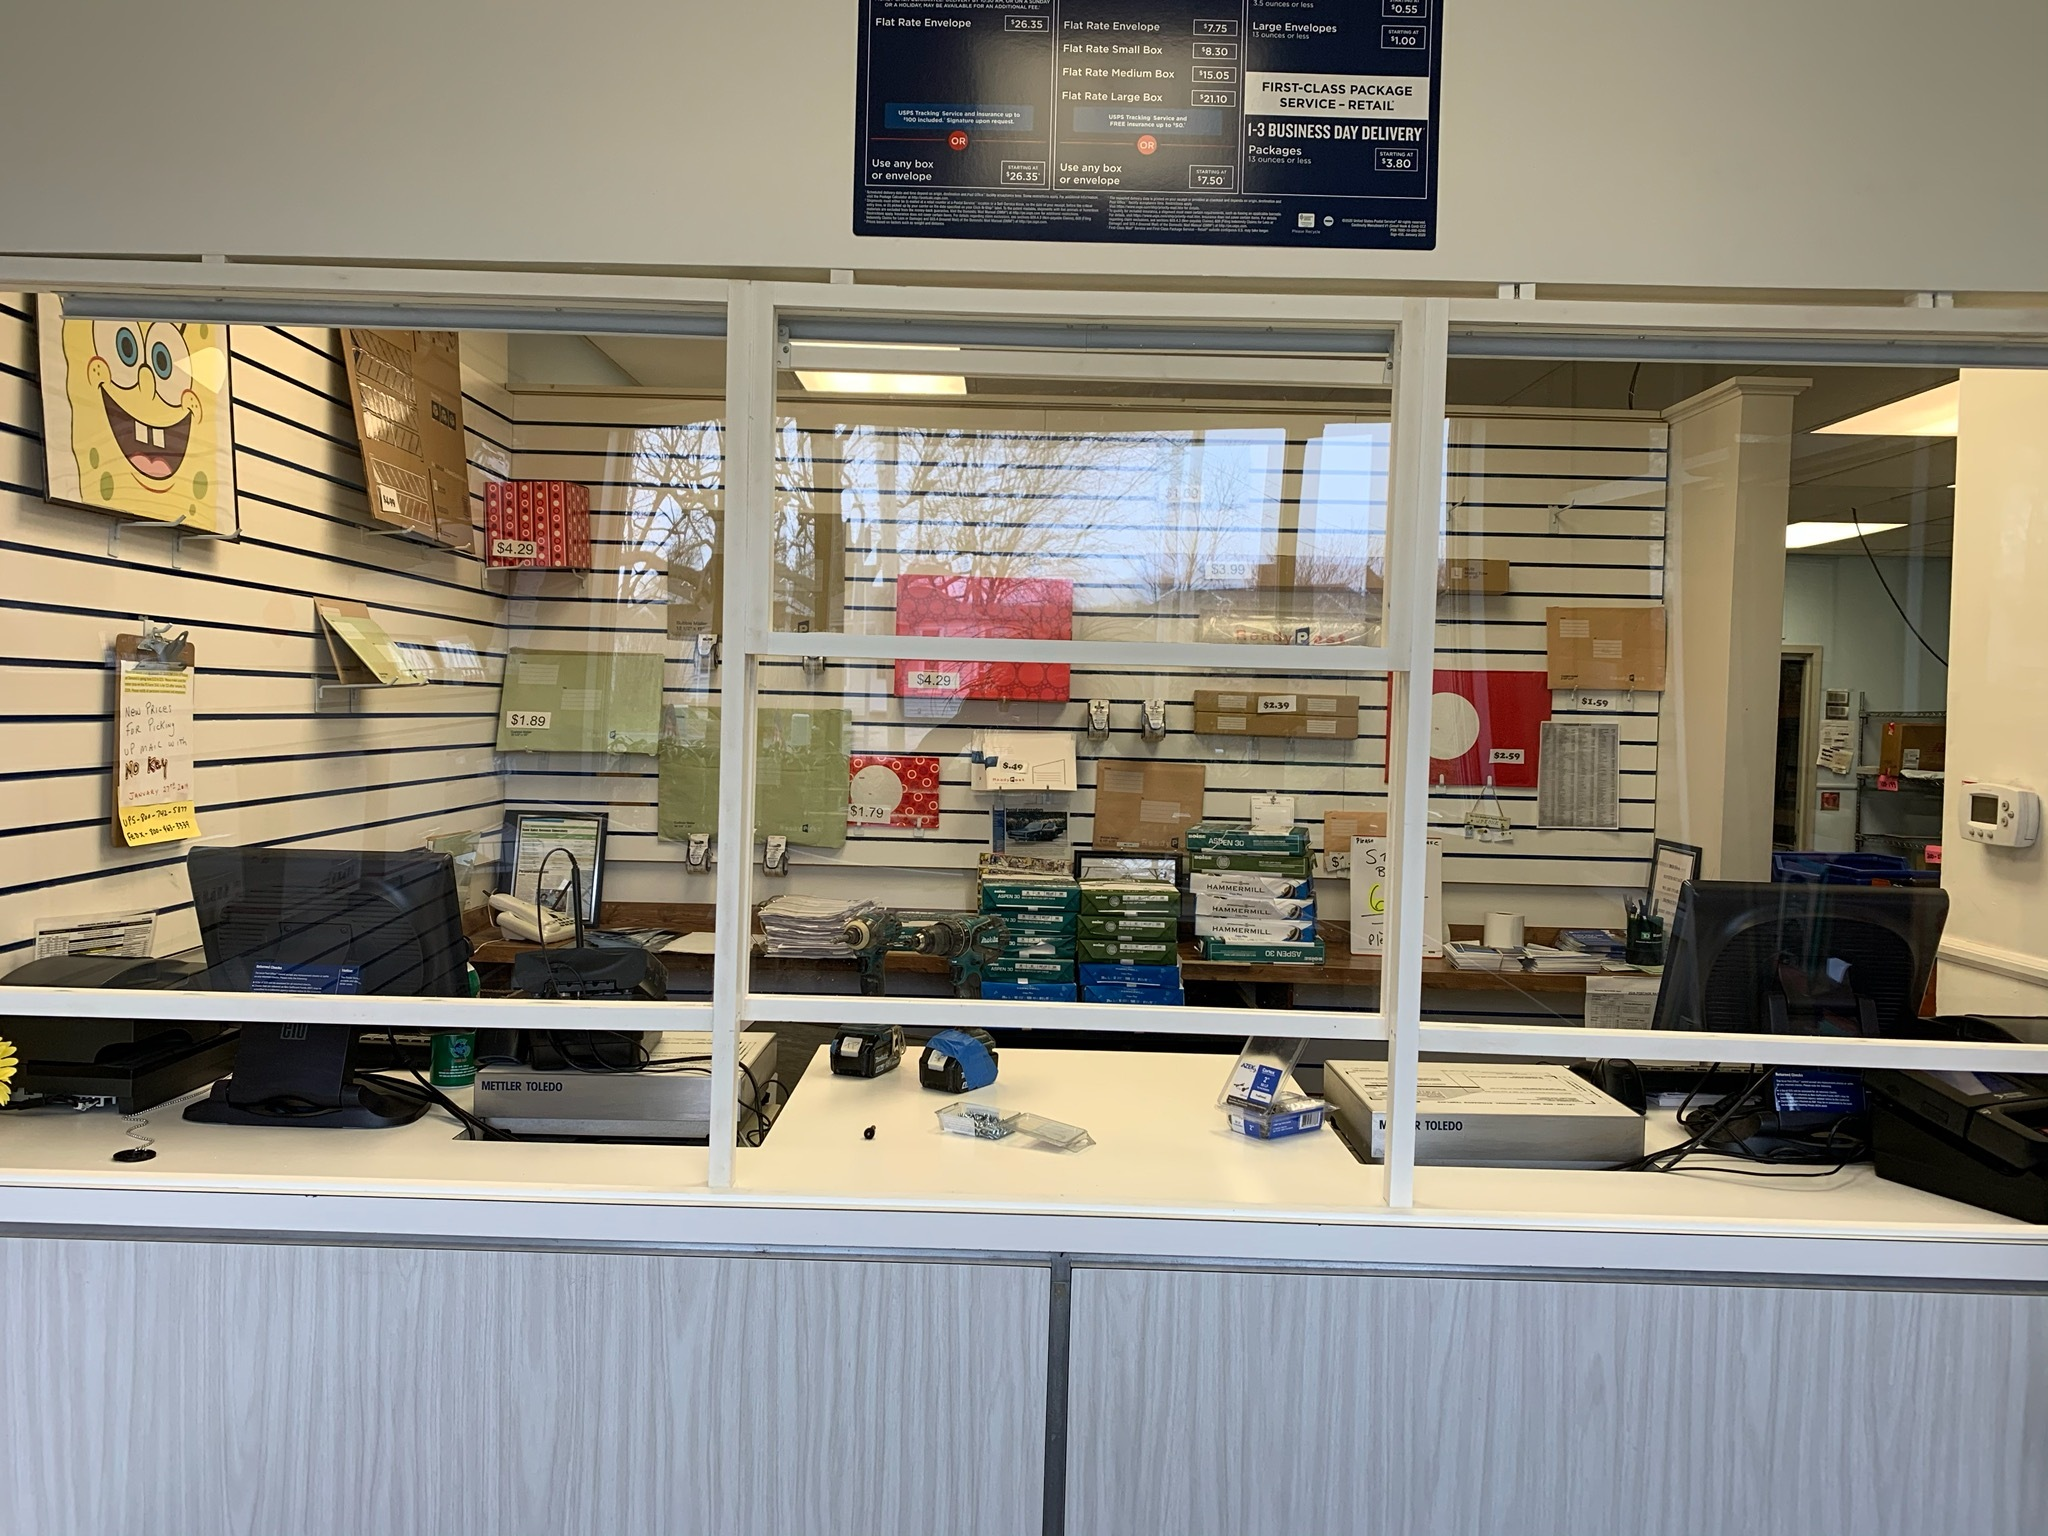 At the Speonk Post Office, new acryllic windows were installed to protect workers and the public.